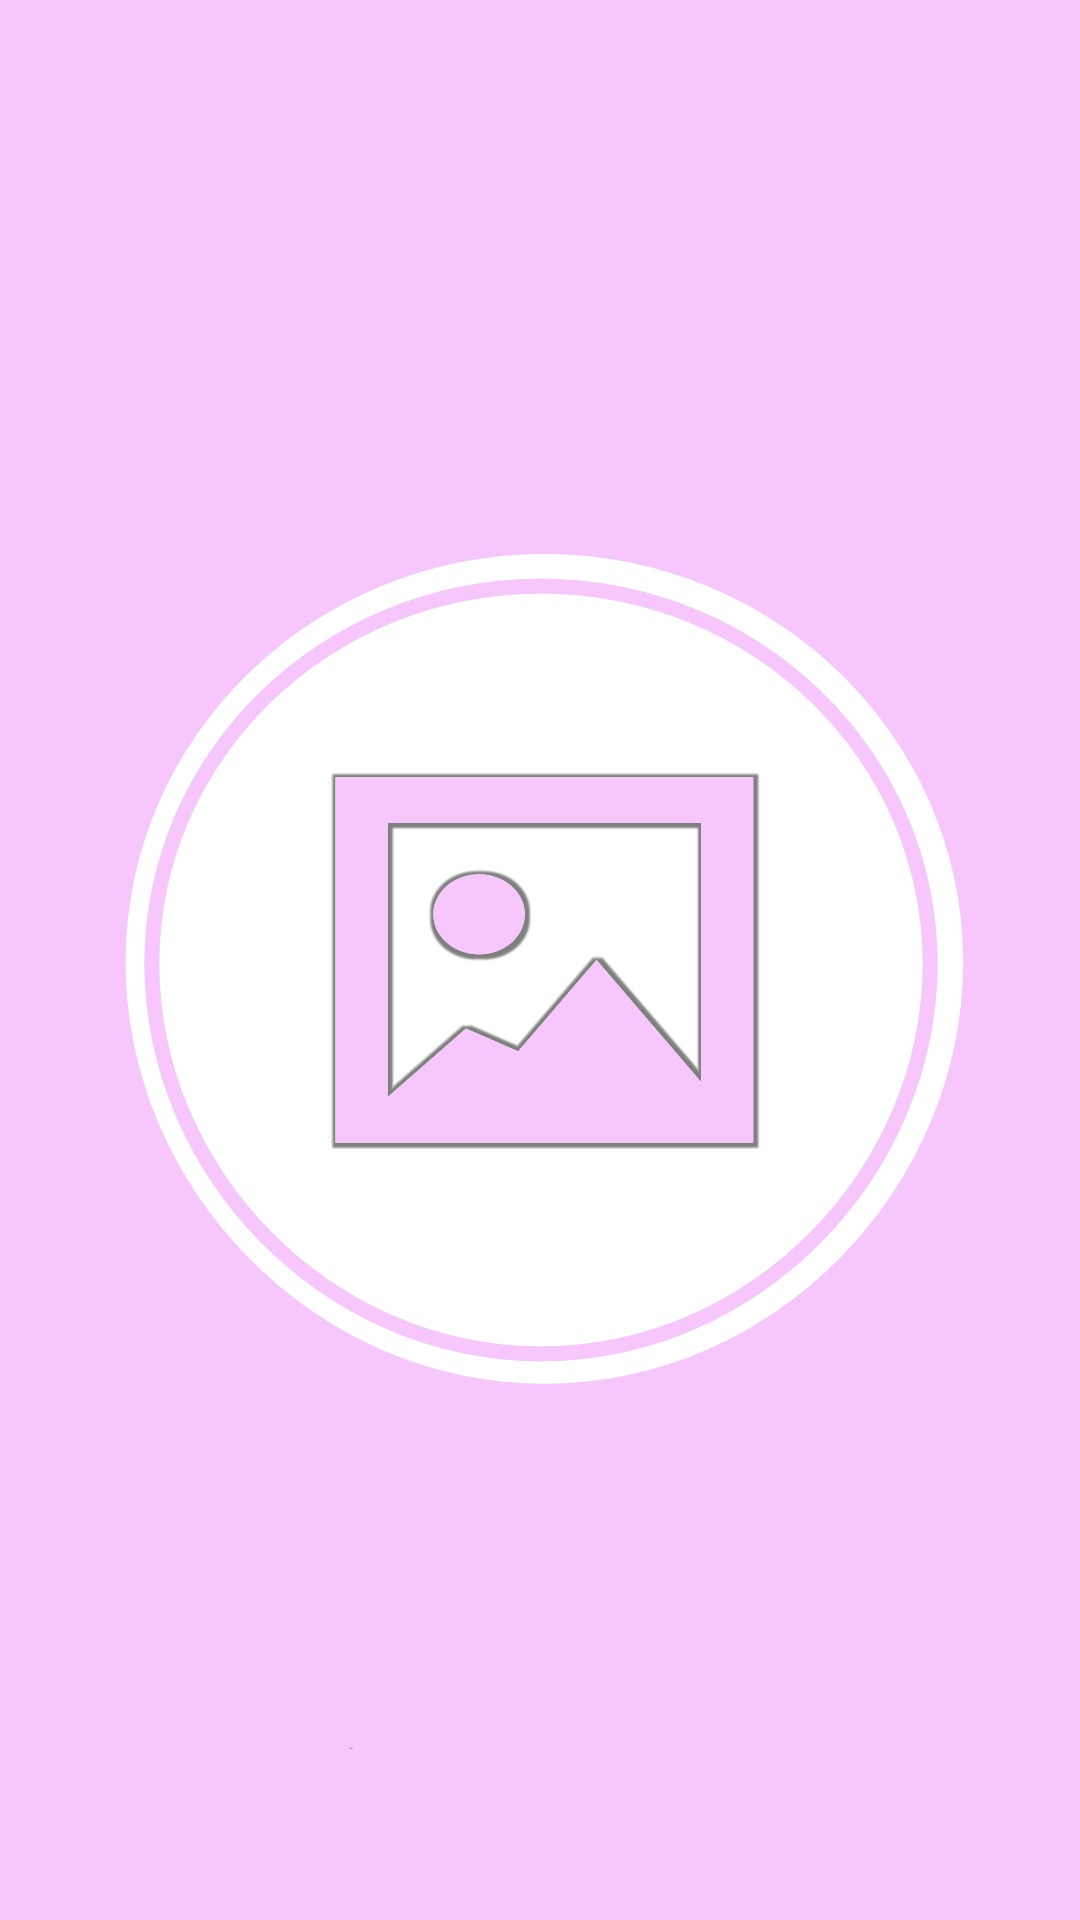 Instagram-cover-photoicon-pink-lotnotes.com.jpg